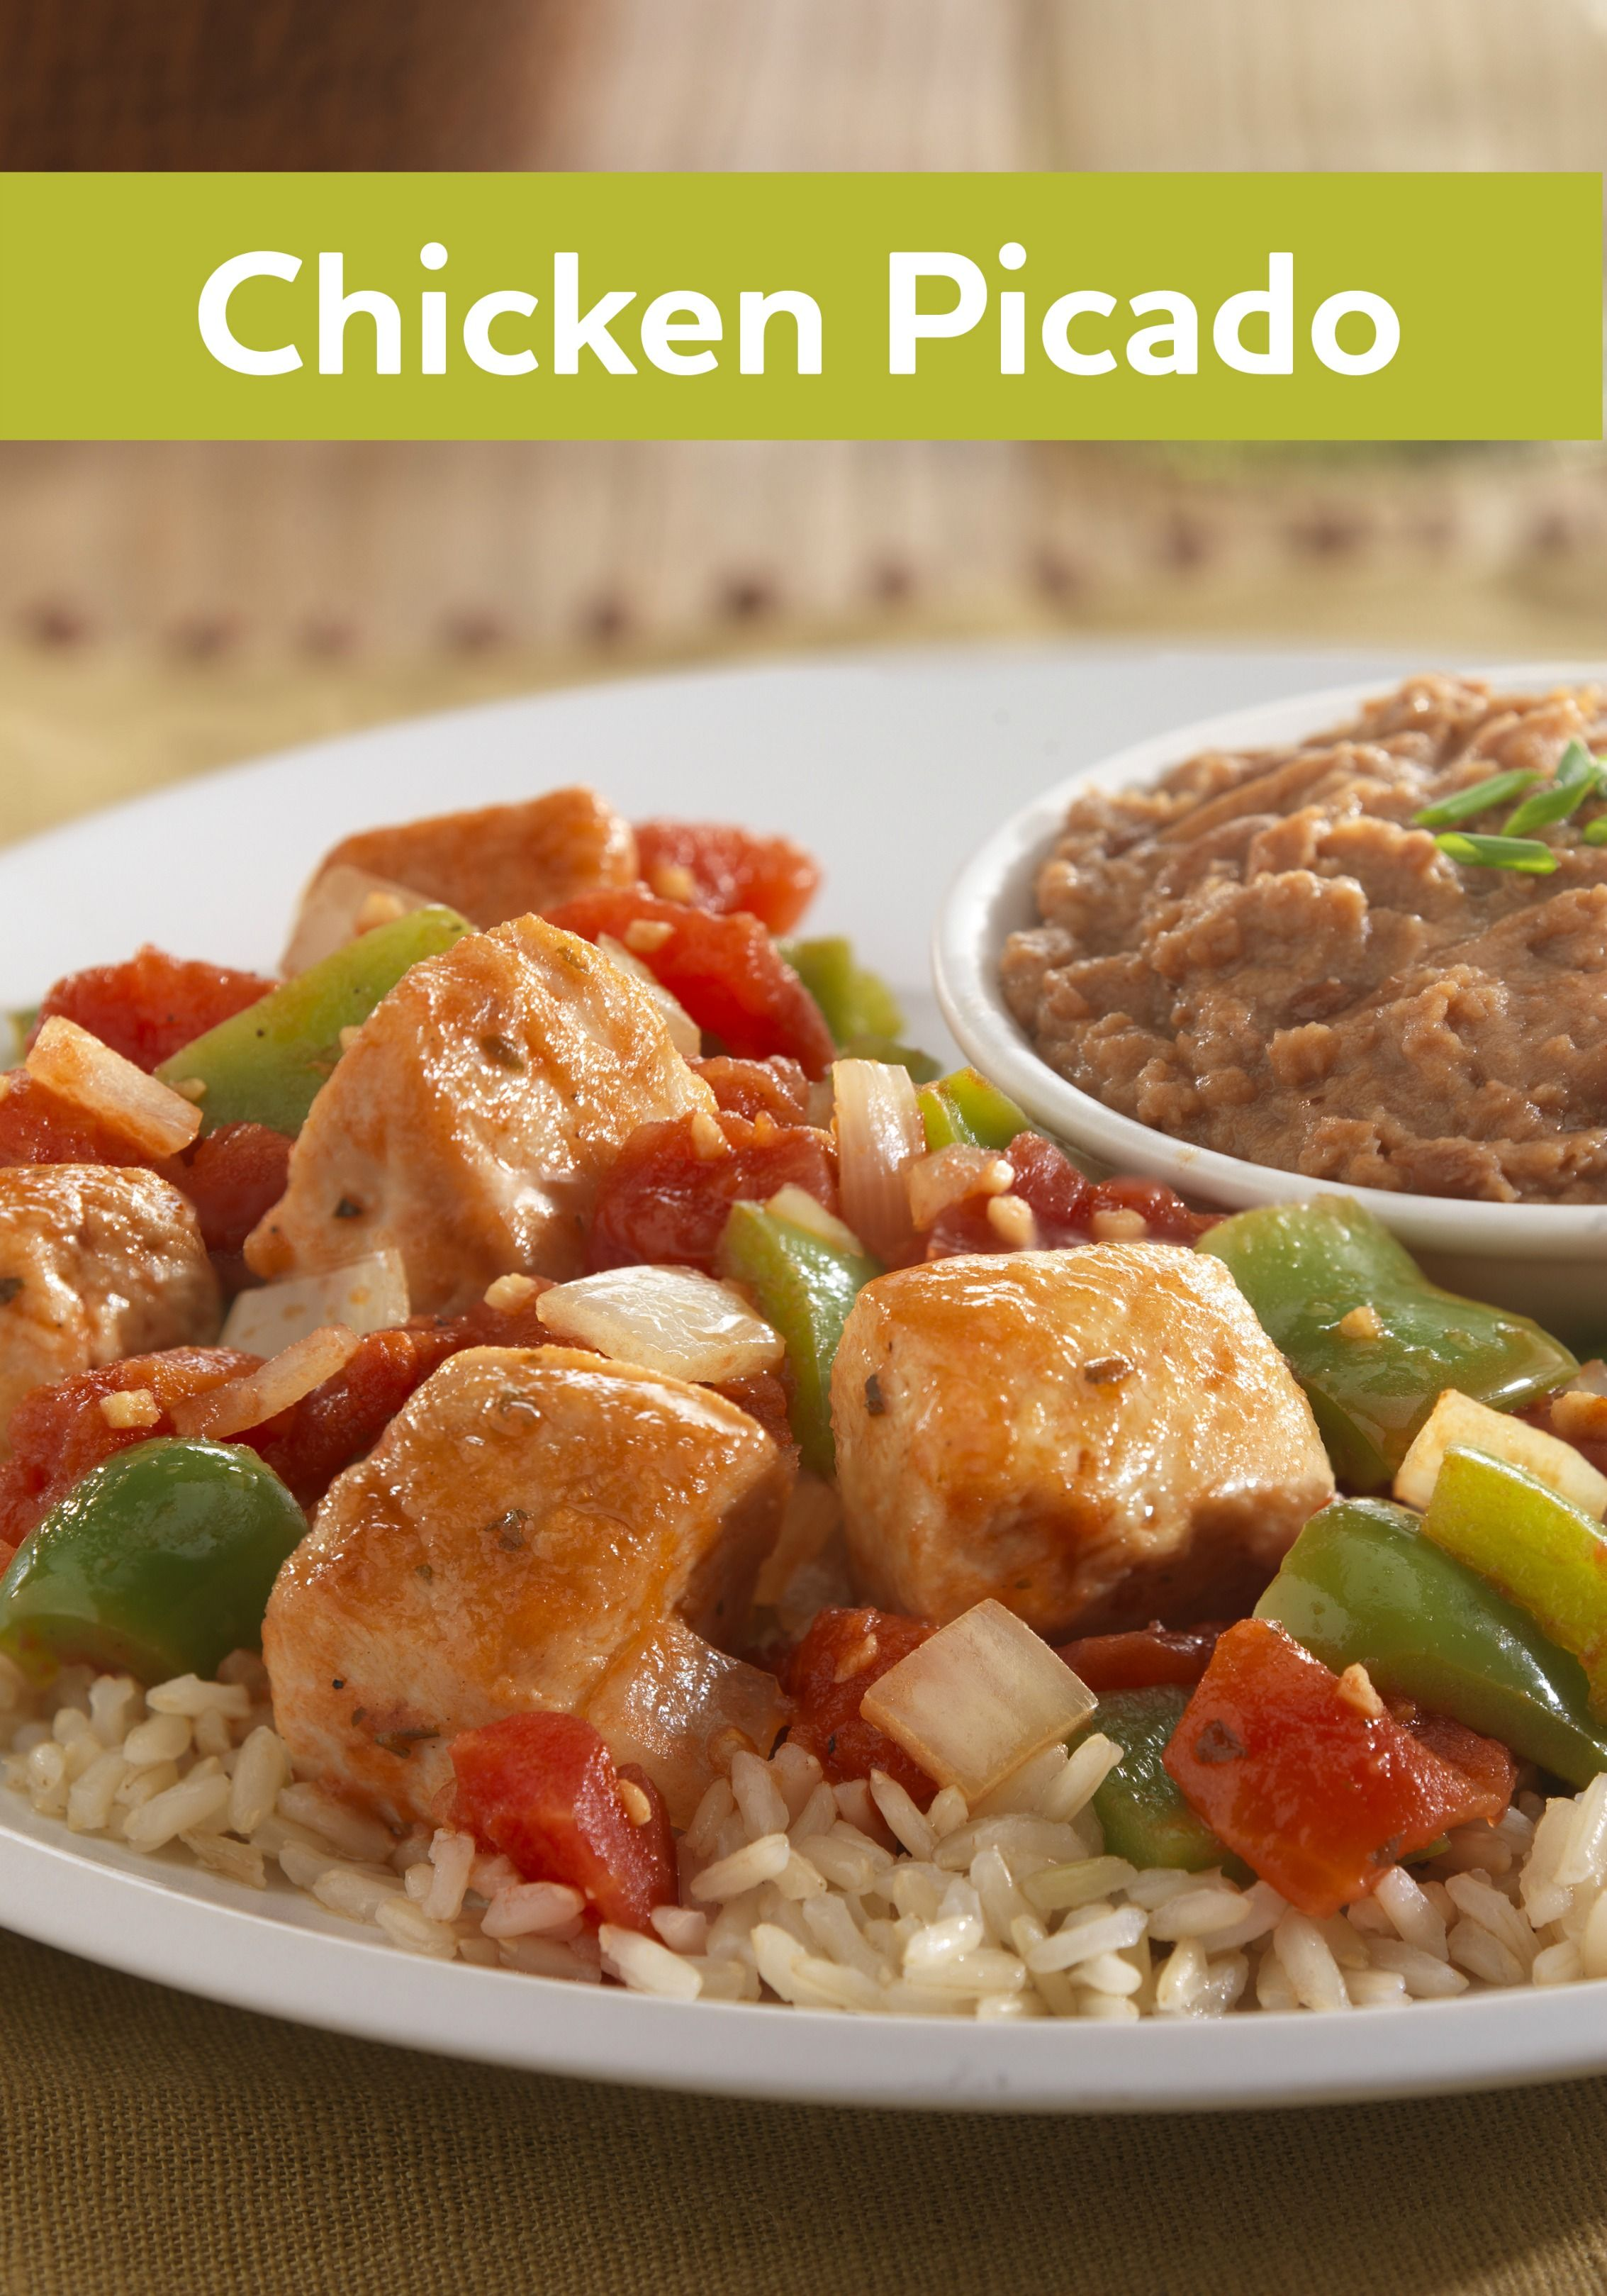 Dinner table with mexican food - Chicken Picado Mexican Food Recipesgf Recipesrecoverdinner Tablethe